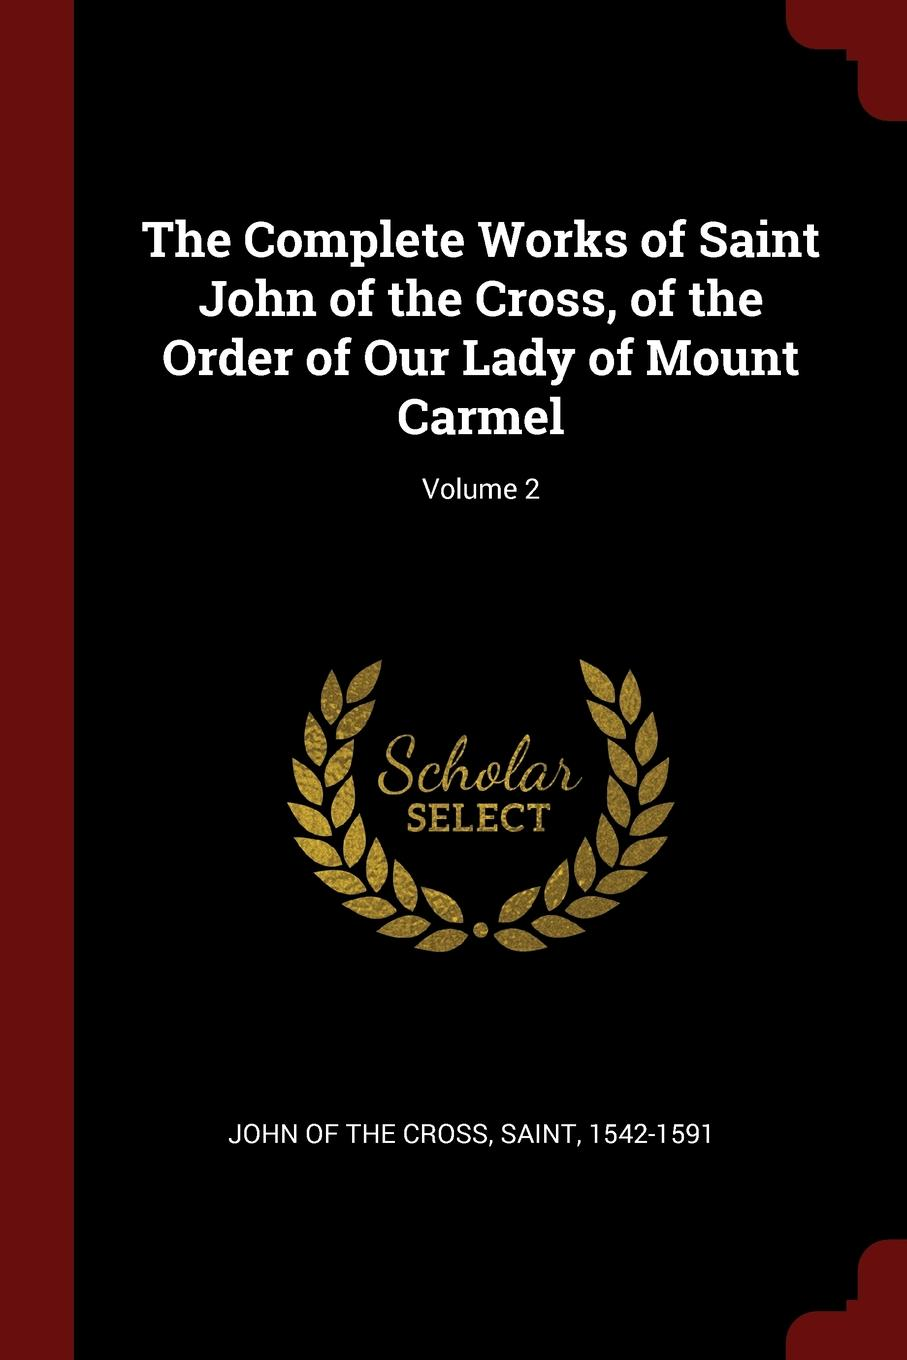 The Complete Works of Saint John of the Cross, of the Order of Our Lady of Mount Carmel; Volume 2